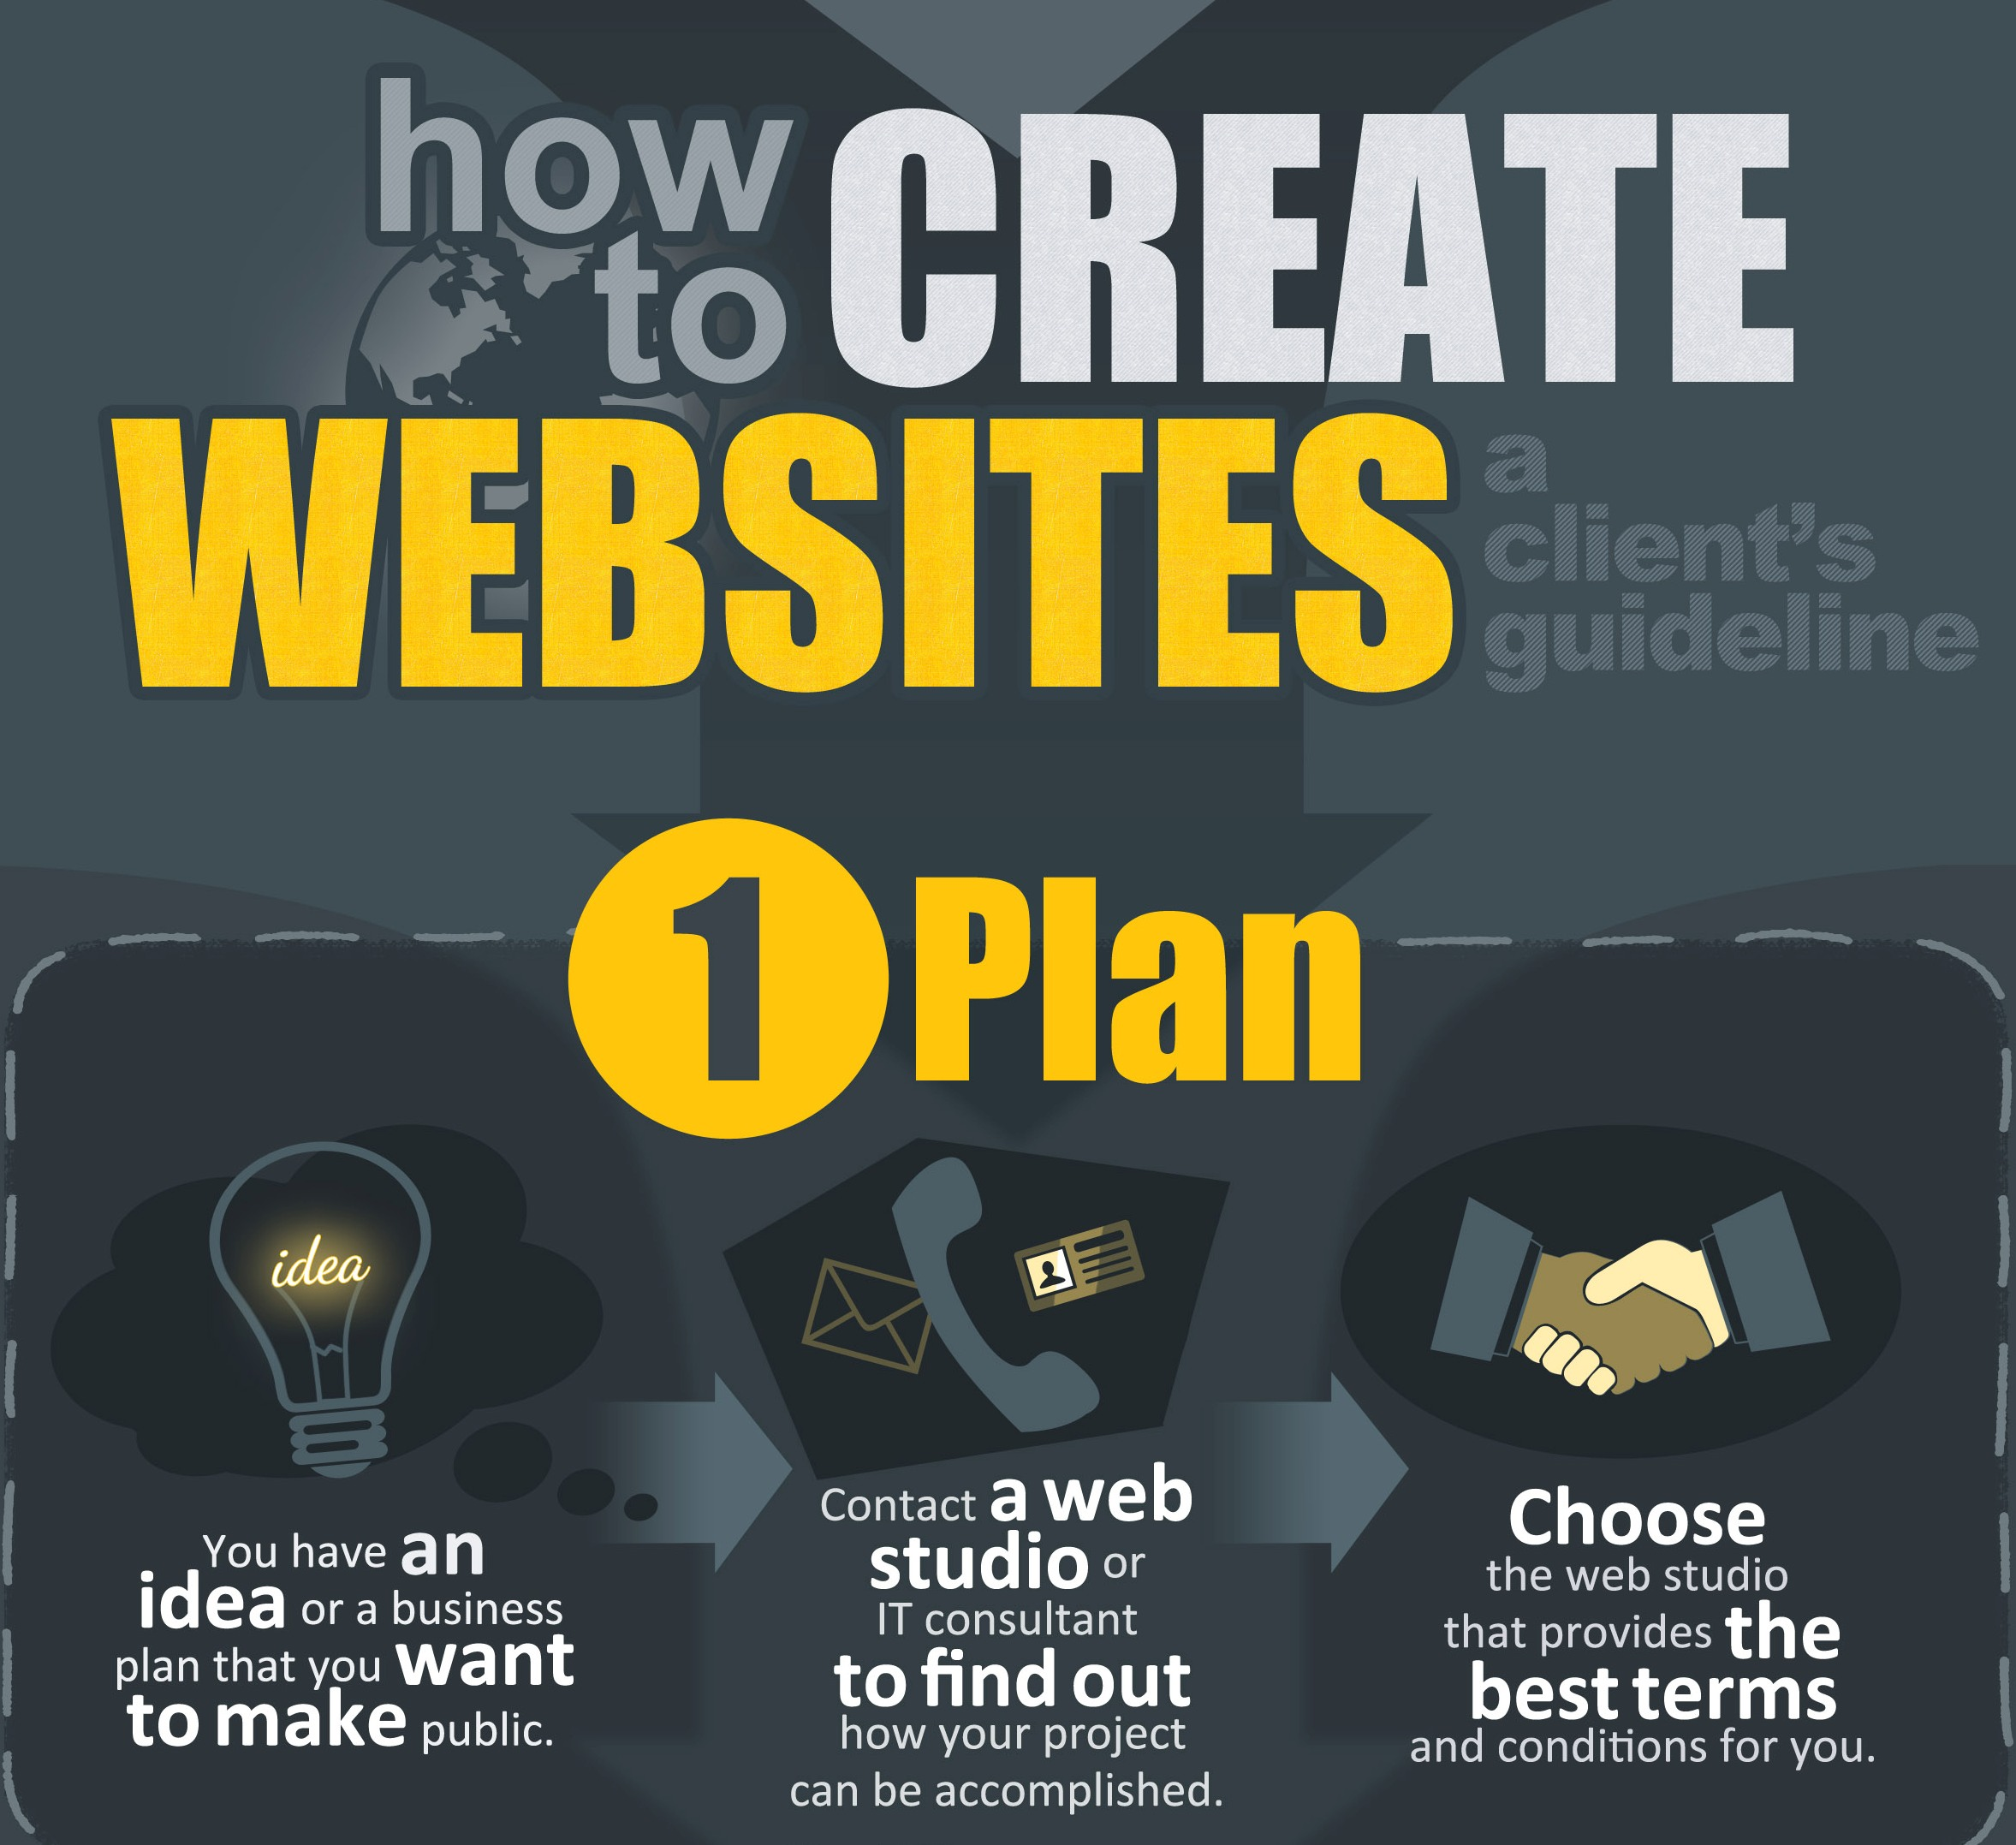 How to create websites (Infographic)